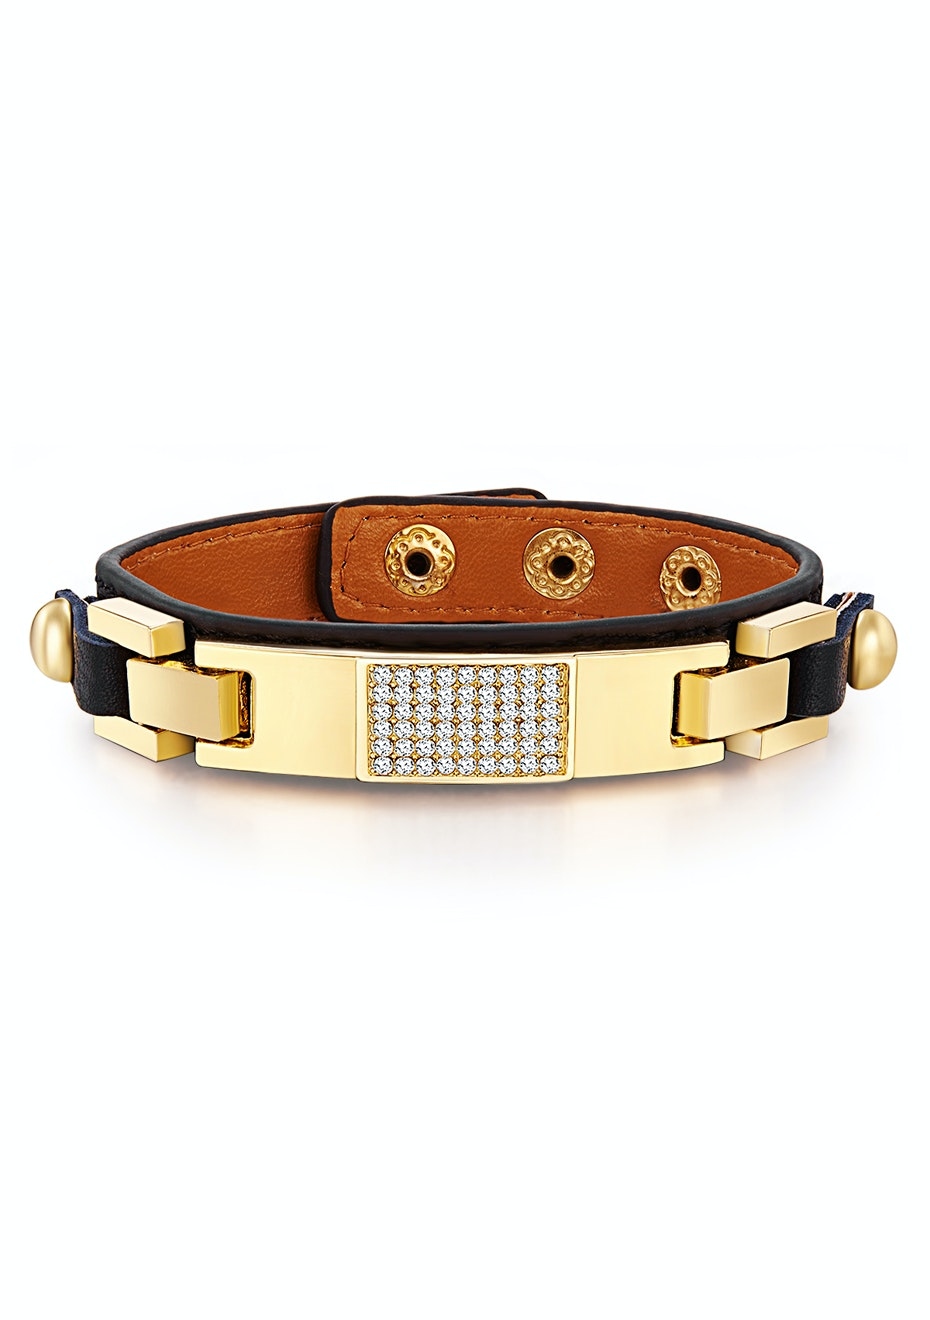 Genuine Cow Leather Bracelet With 18k Gold Buckle